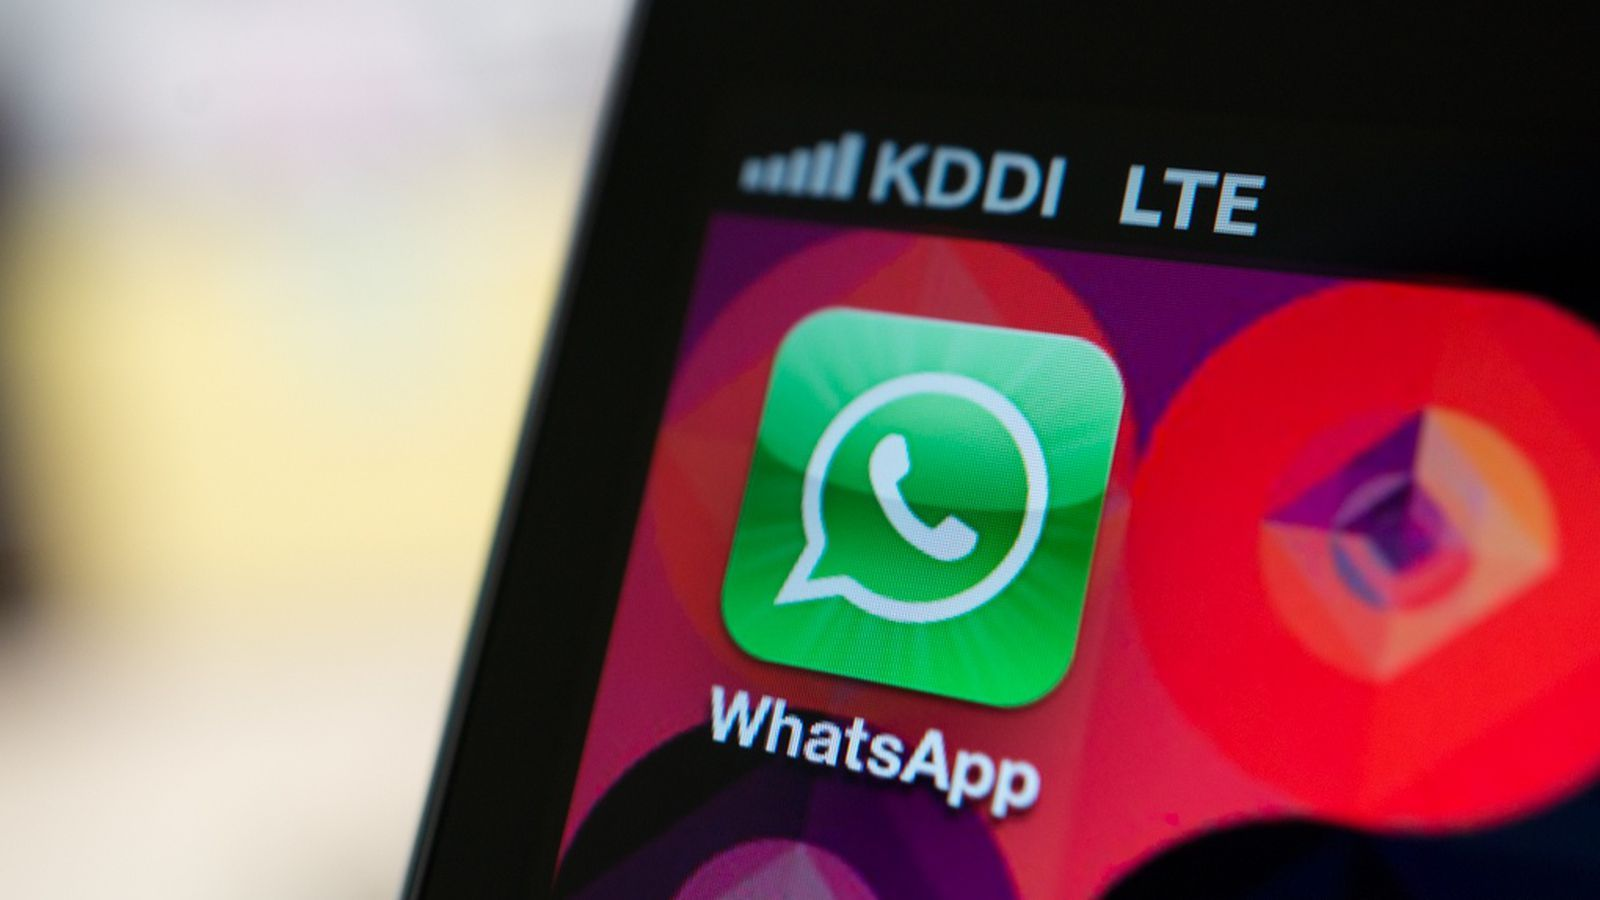 WhatsApp was down for two hours and the internet wasn't happy